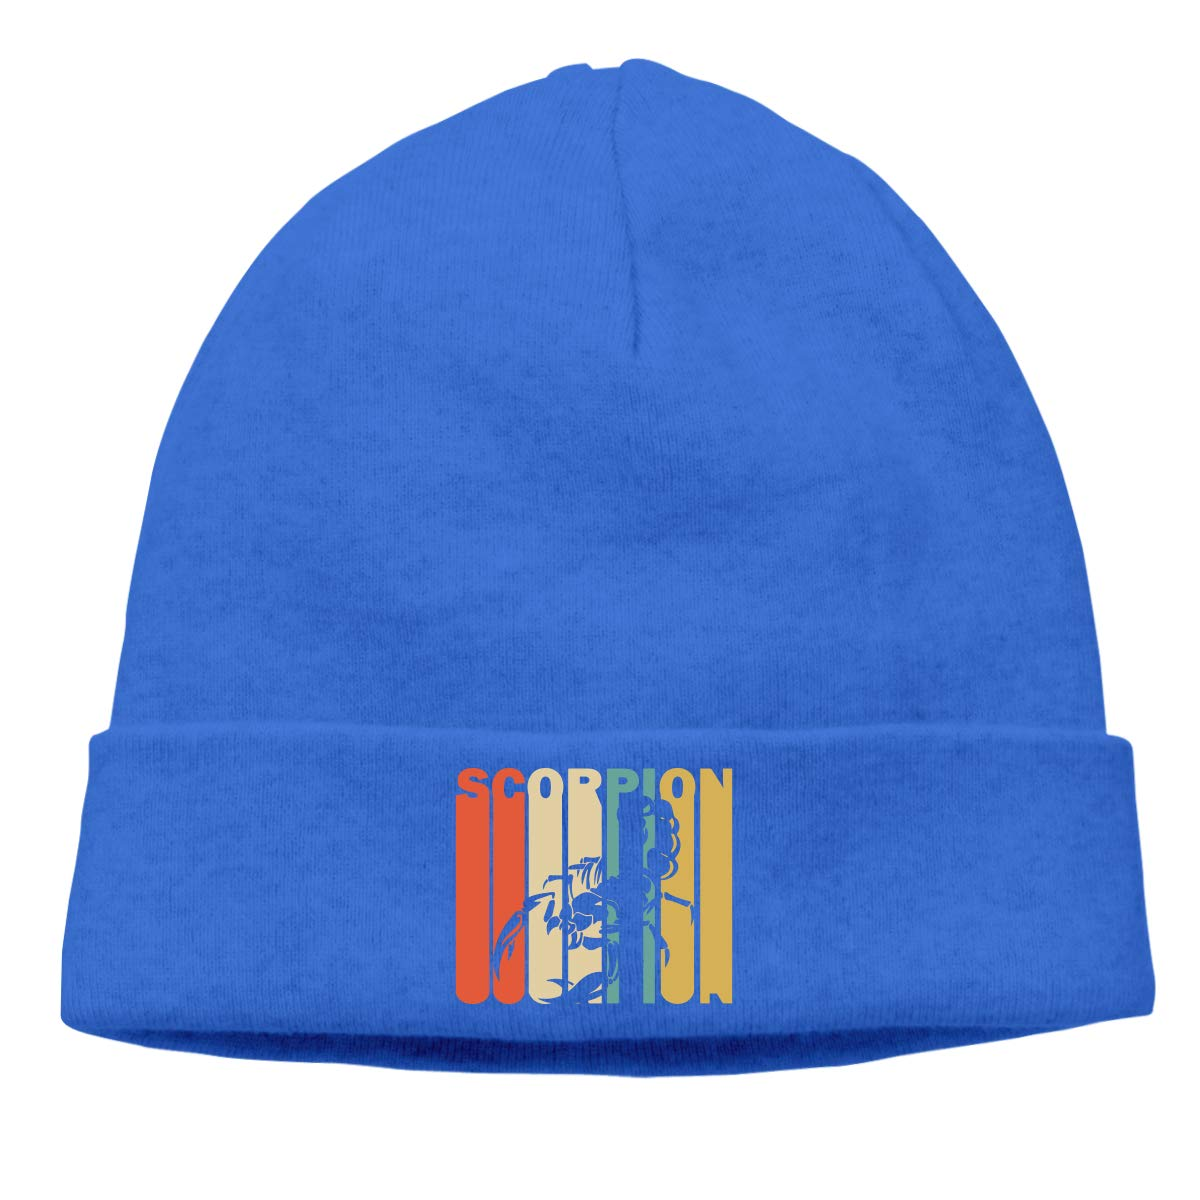 Mens and Womens Knitting Cap Soft Retro Style Scorpion Silhouette Skull Beanies for Mens Womens